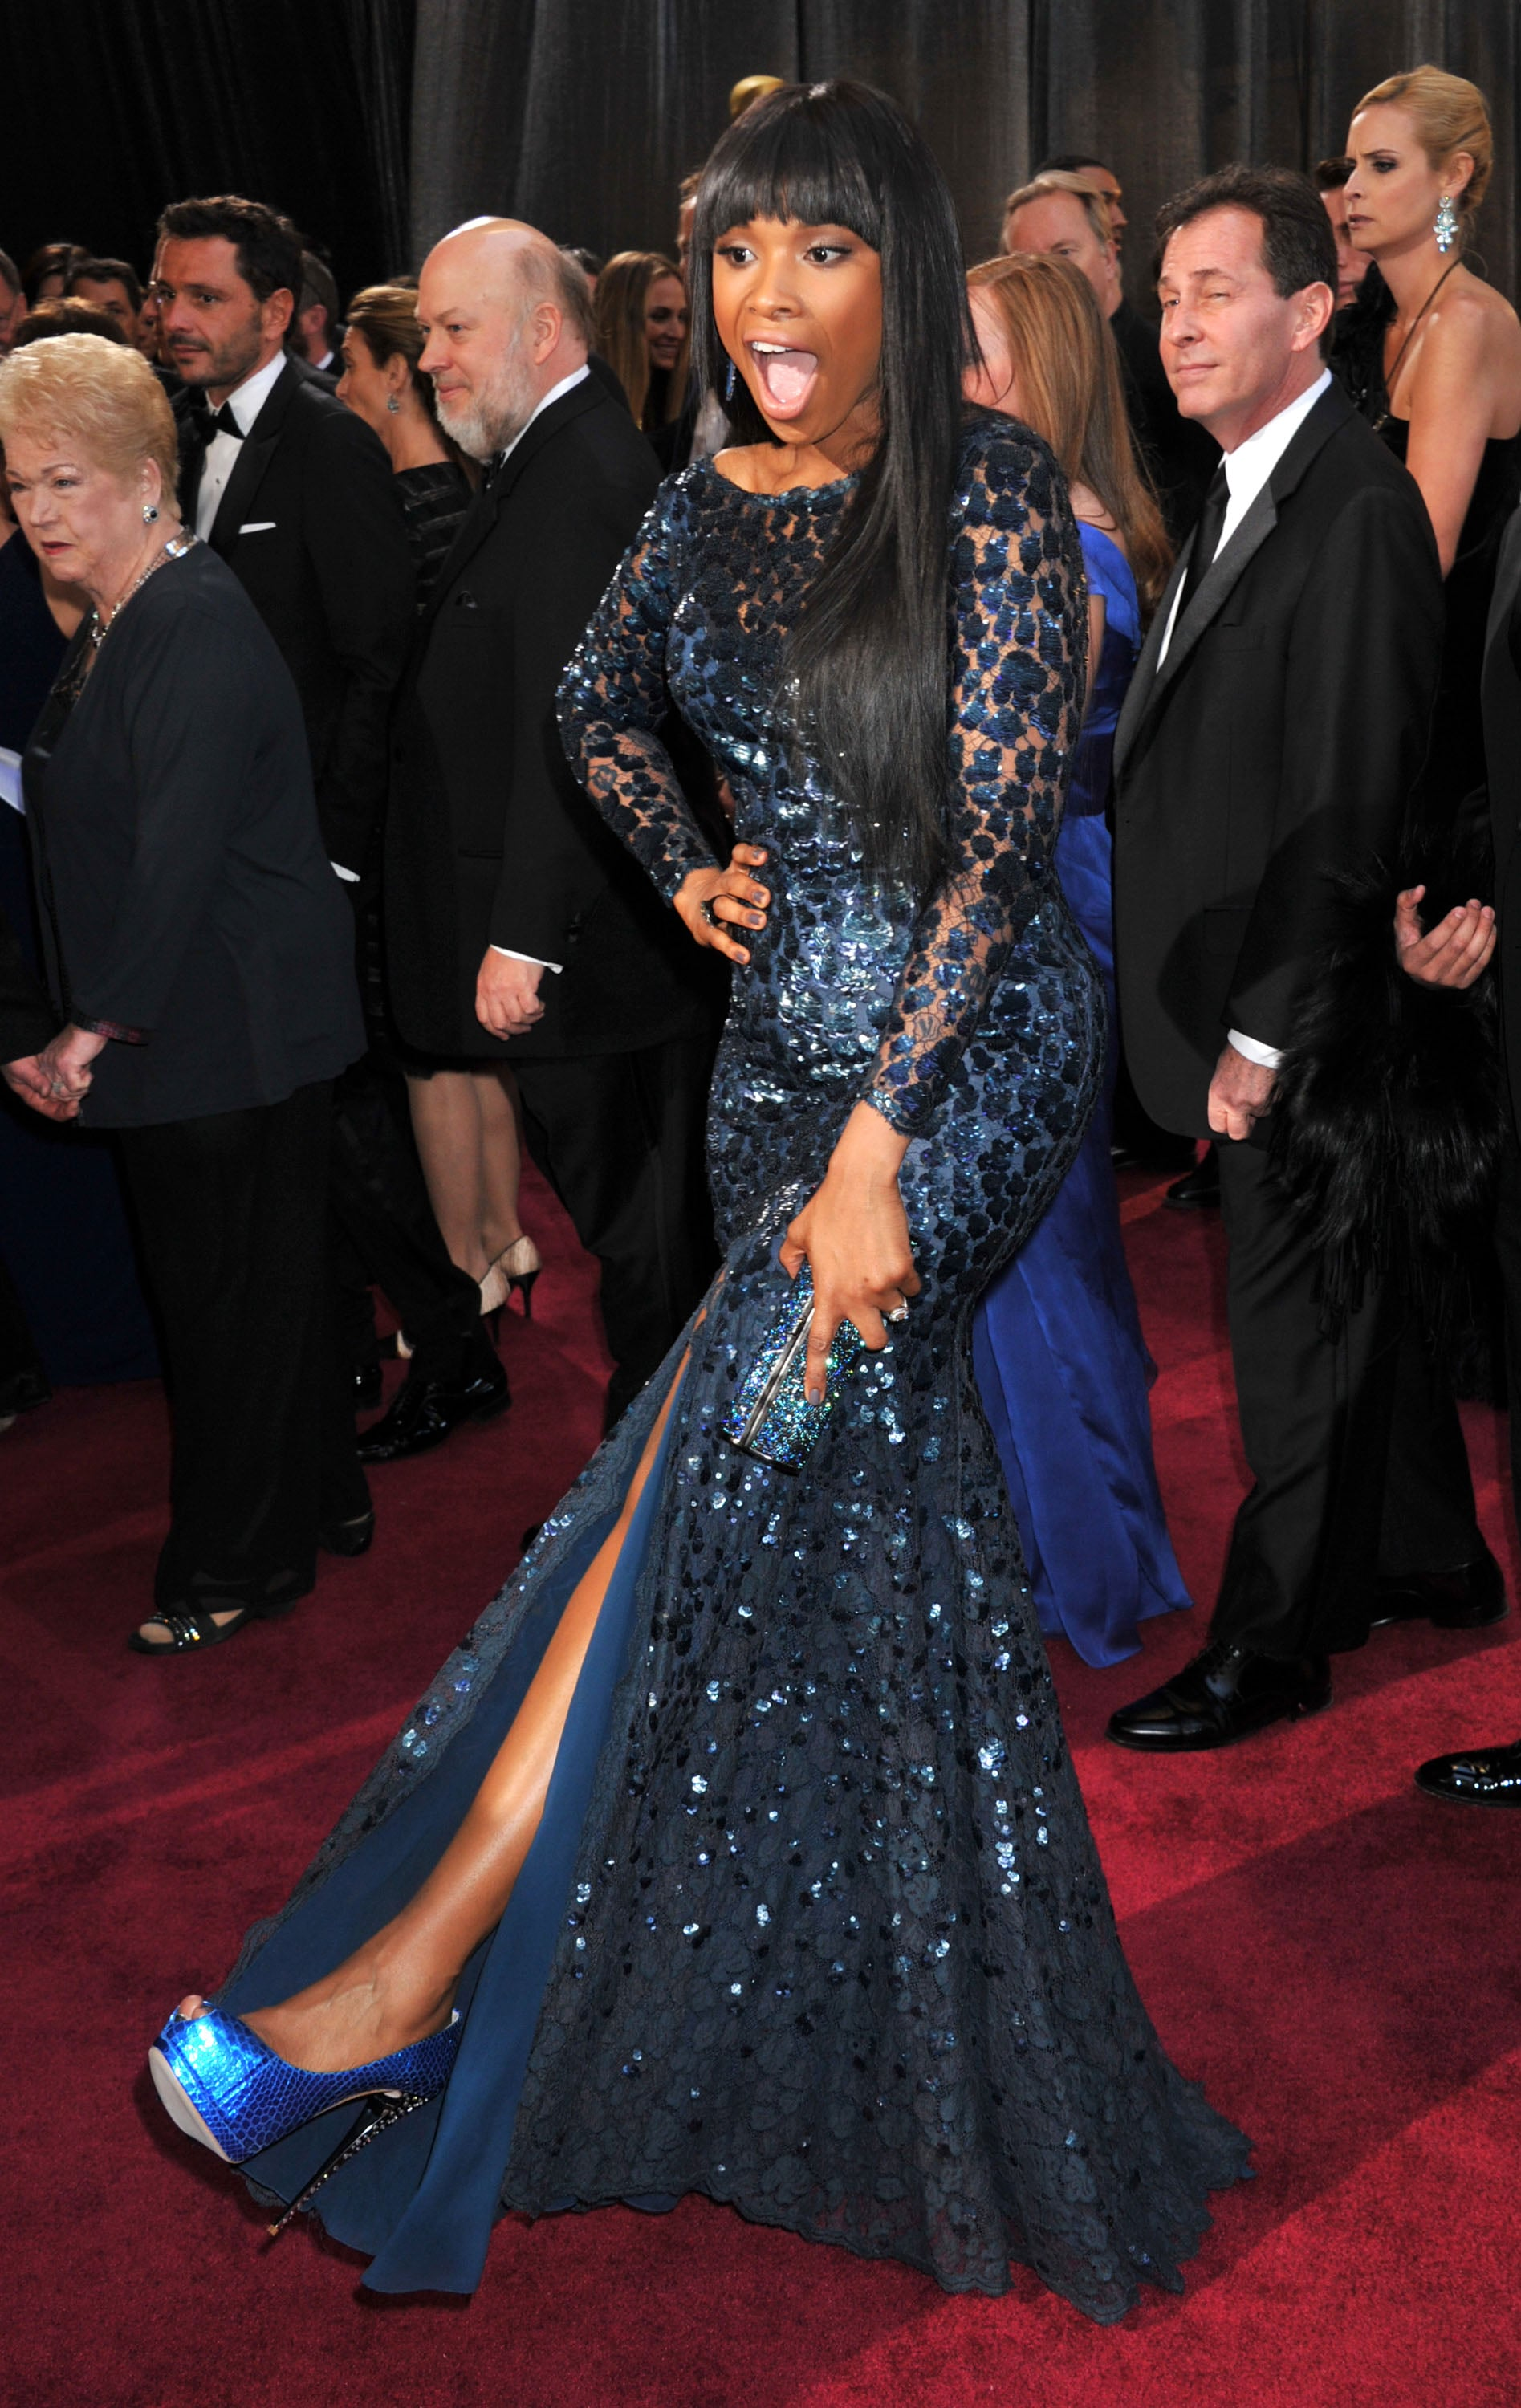 Jennifer Hudson kicked up her heels for the cameras on the red carpet.